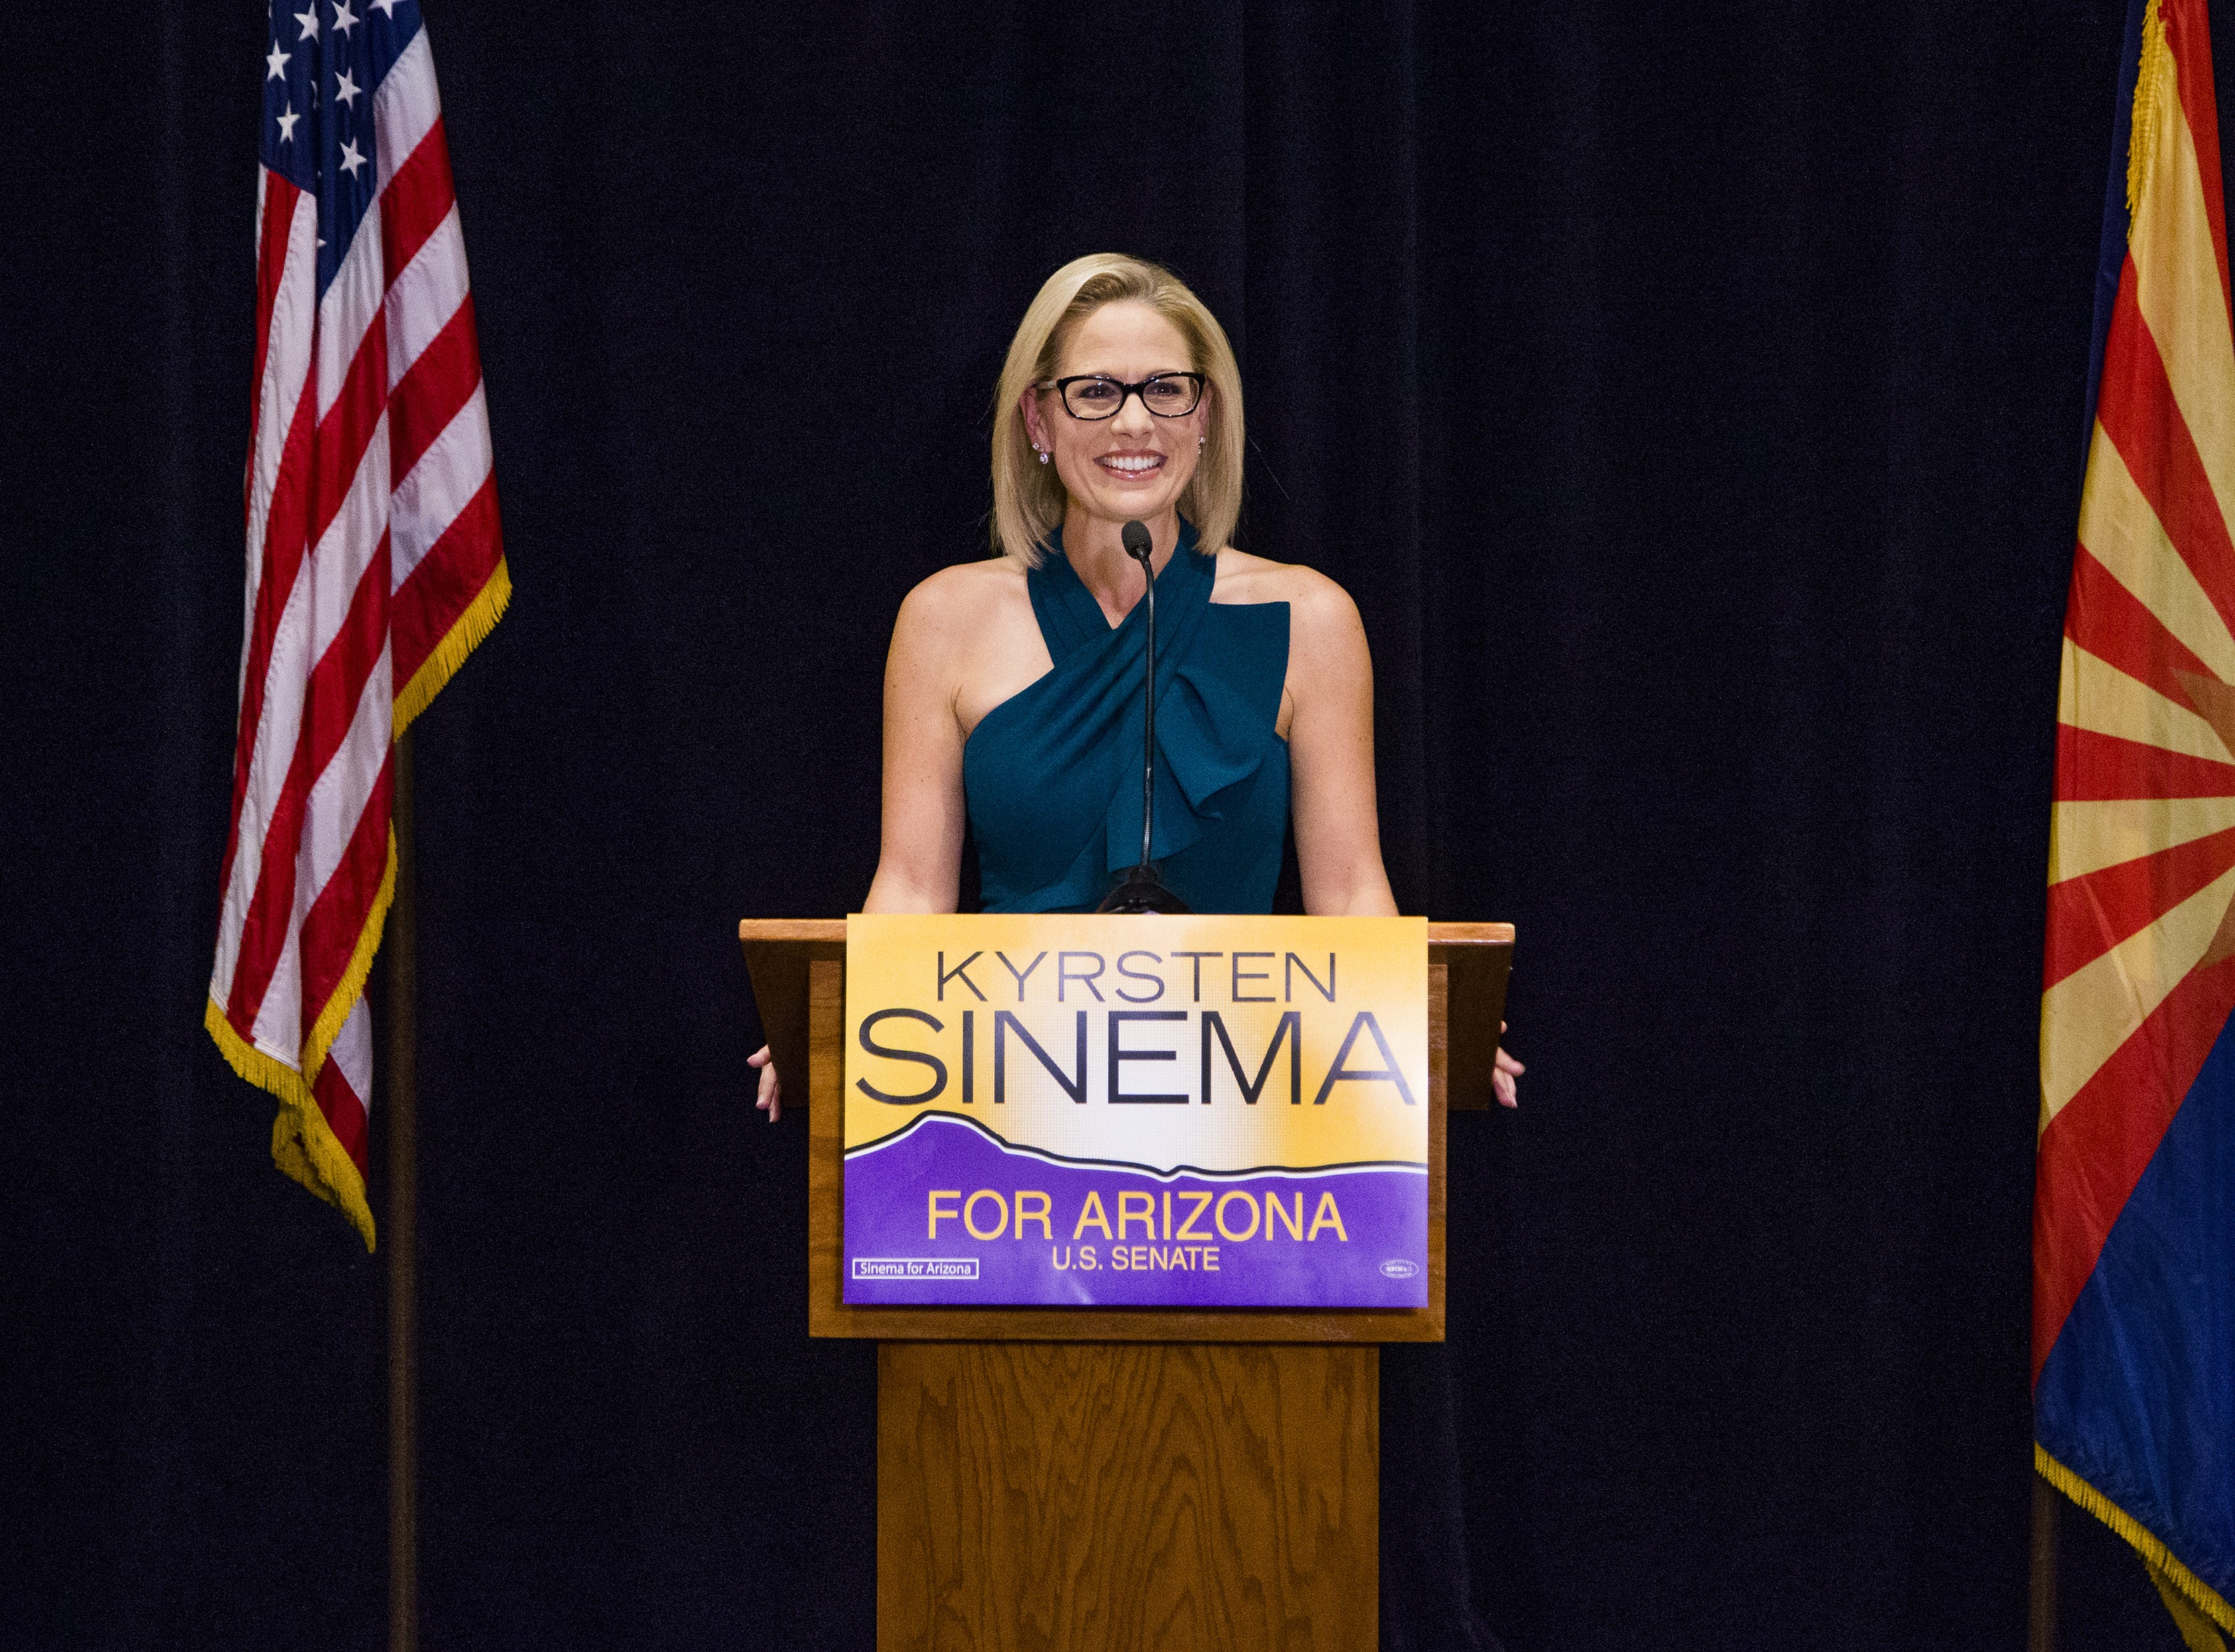 Kyrsten Sinema speaks to the press after the Associated Press declared her the winner of the U.S. Senate race against Martha McSally. The press conference was held at the Omni Scottsdale Resort & Spa at Montelucia in Scottsdale, Monday, November 12, 2018.